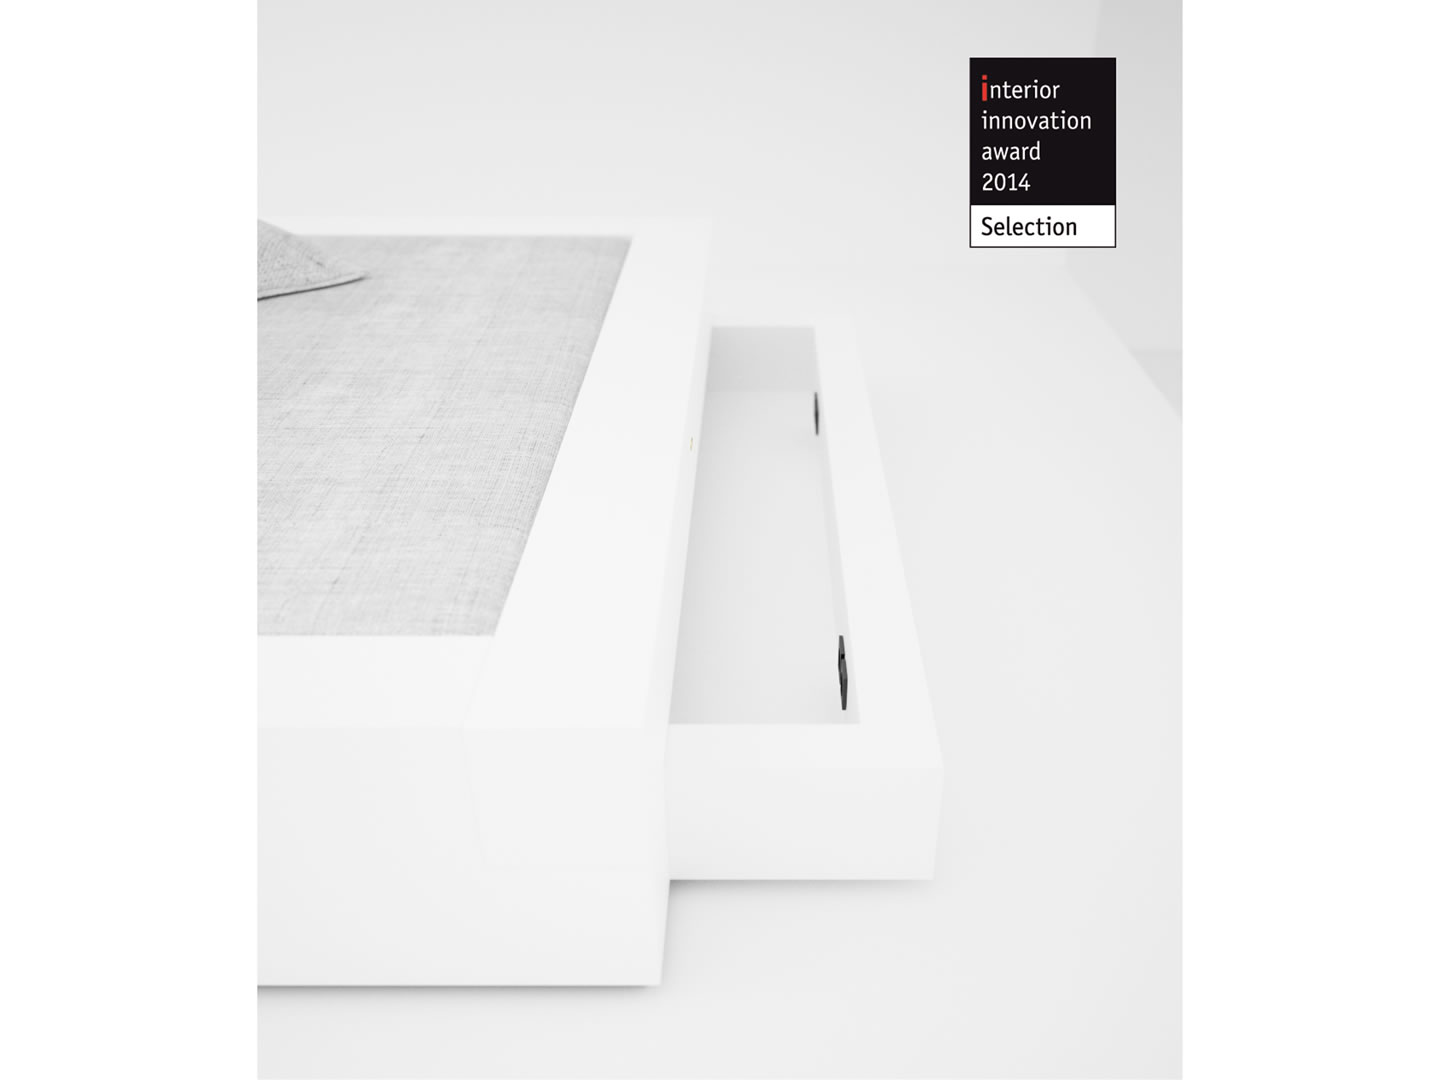 RECHTECK BETT I I Minimalistisches Weisses Bett Mit Bettkaesten Interior Innovation Award 2014